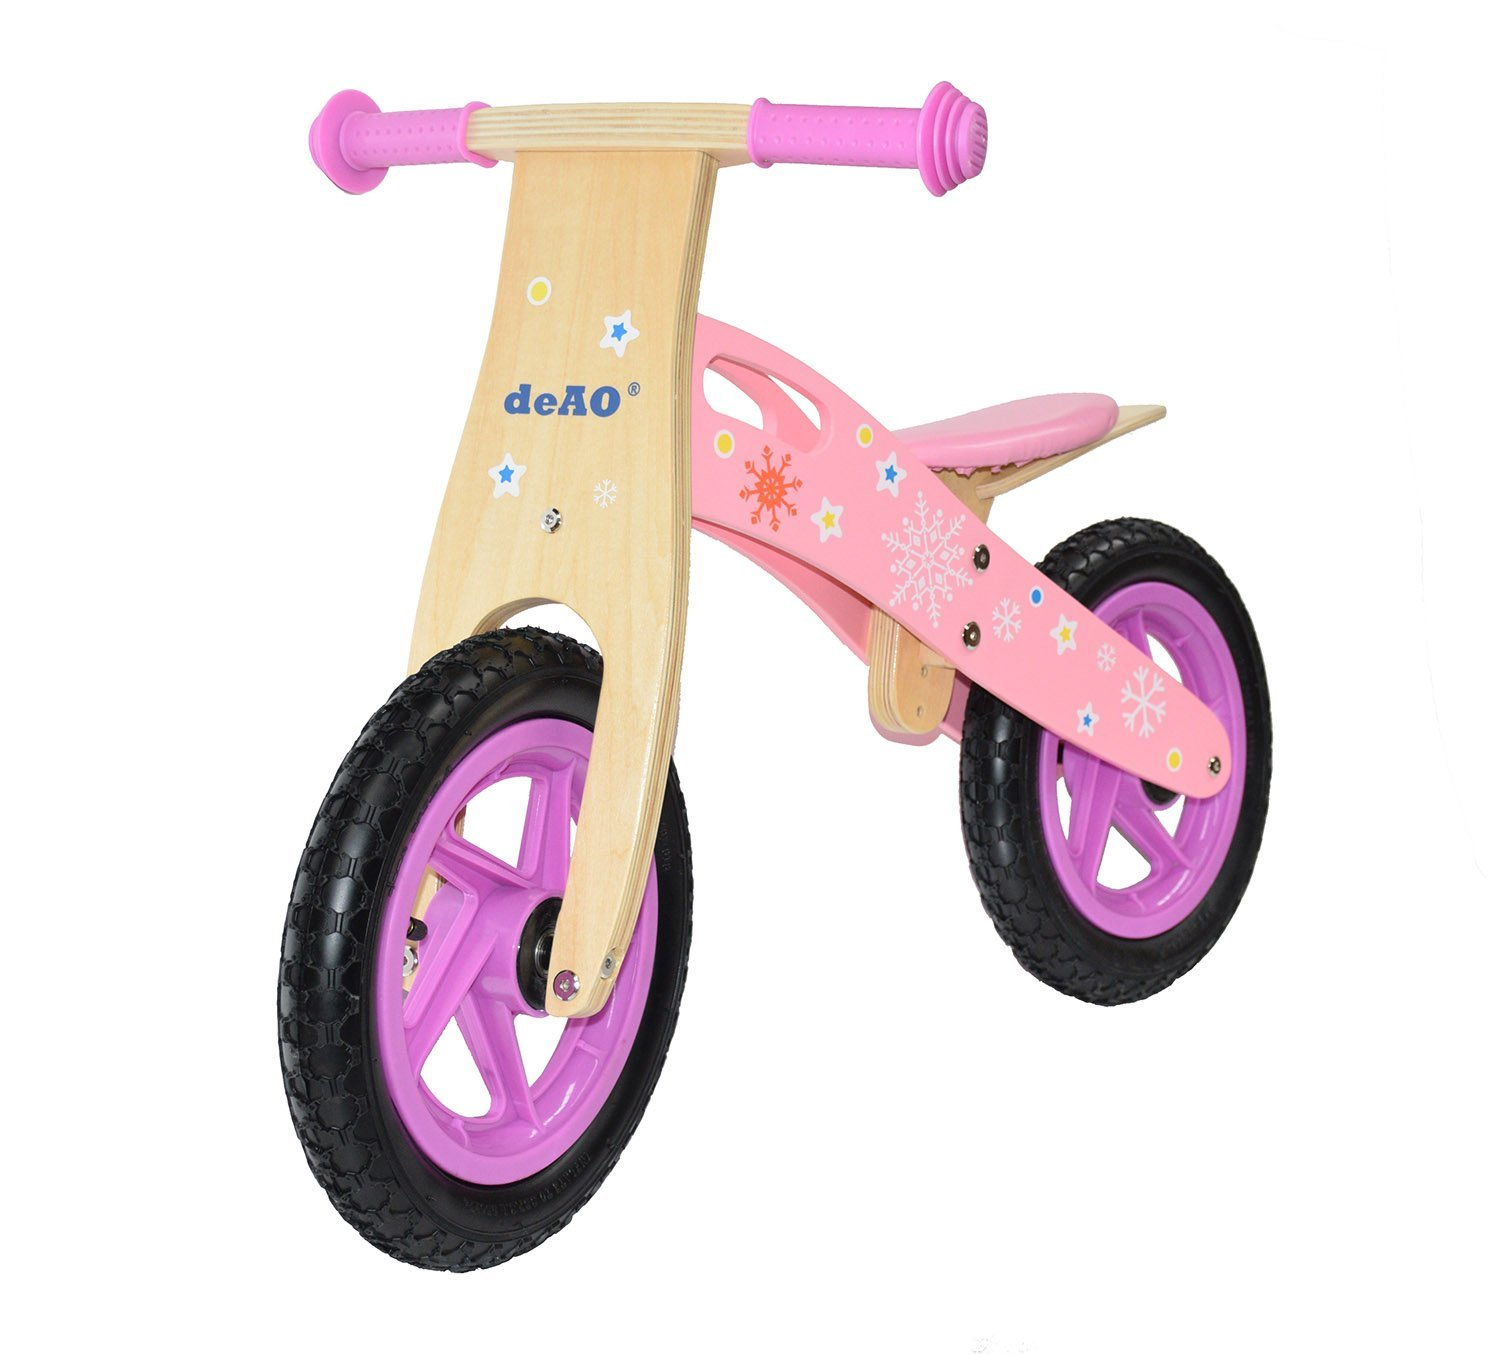 KIDS WOODEN BALANCE TRAINING BIKE CYCLE